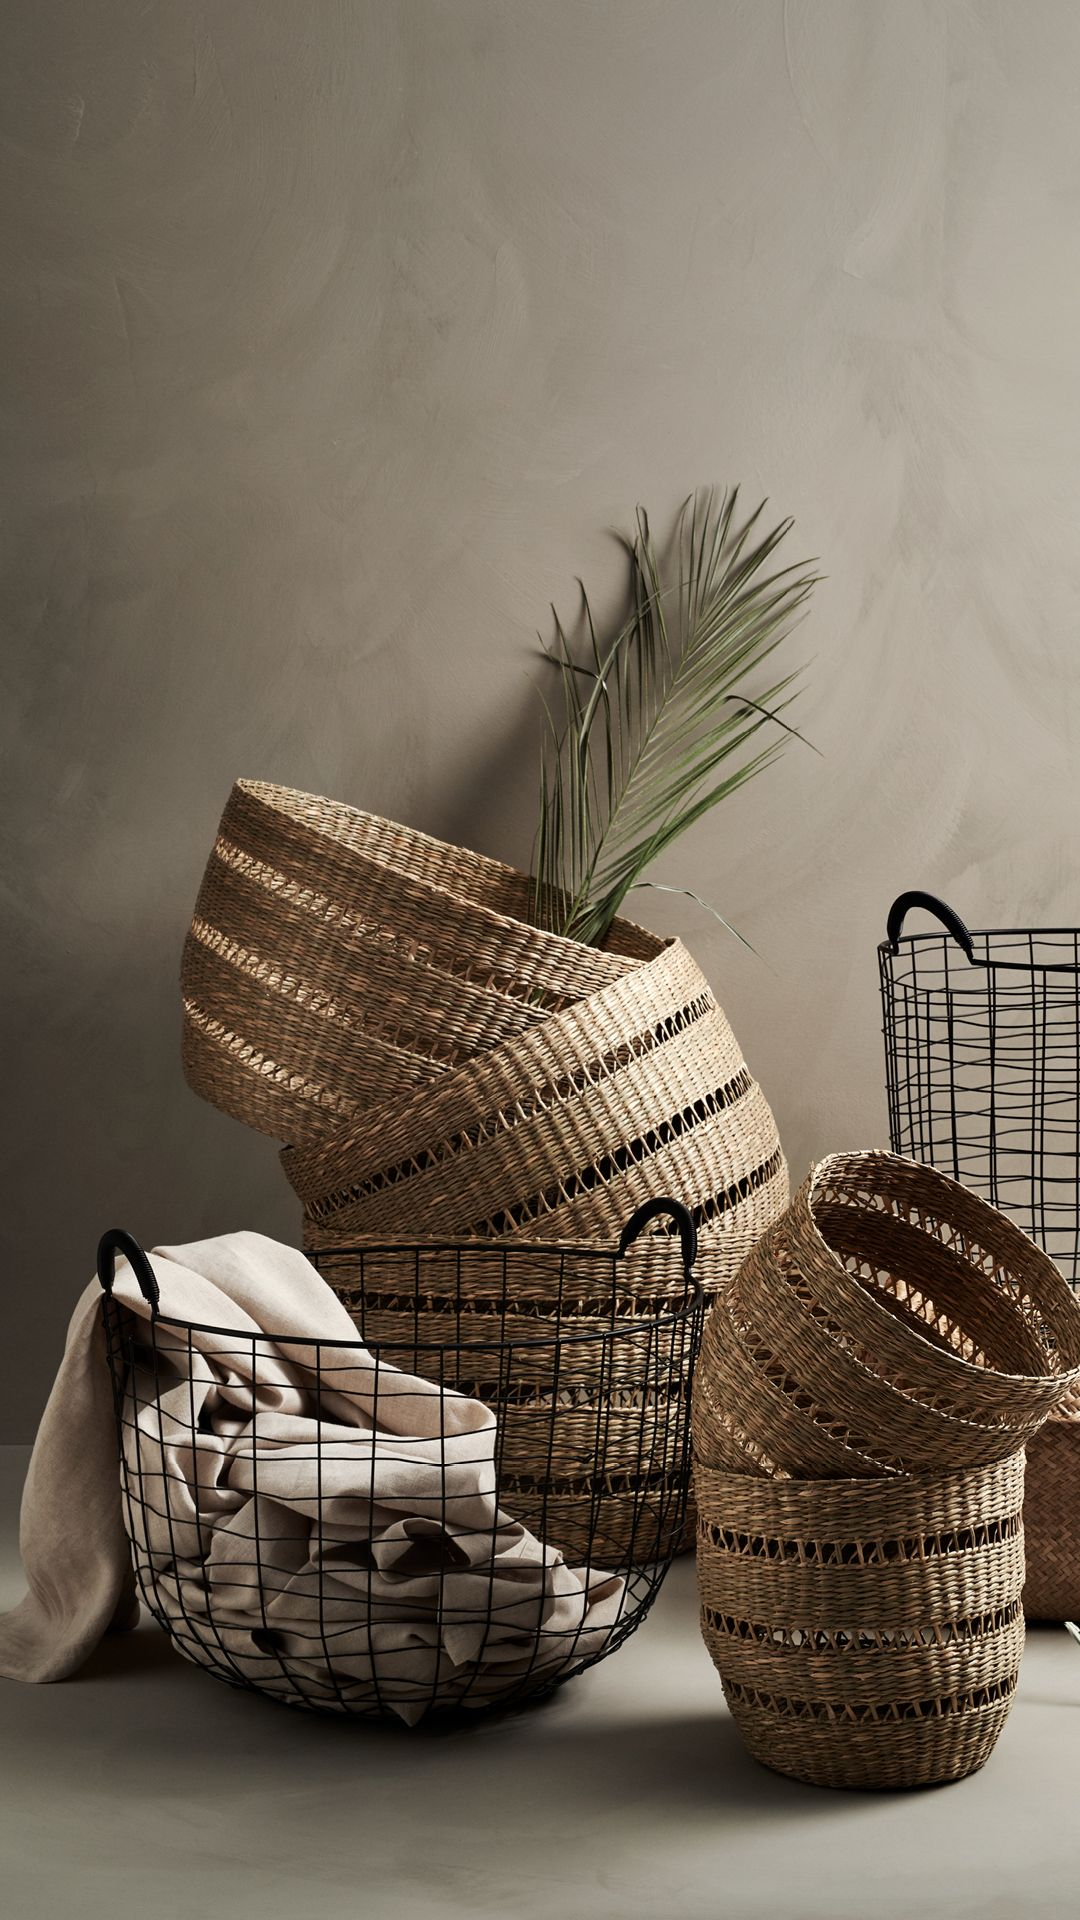 Hm Home Store In Style With These Rustic Woven And Classic Metal